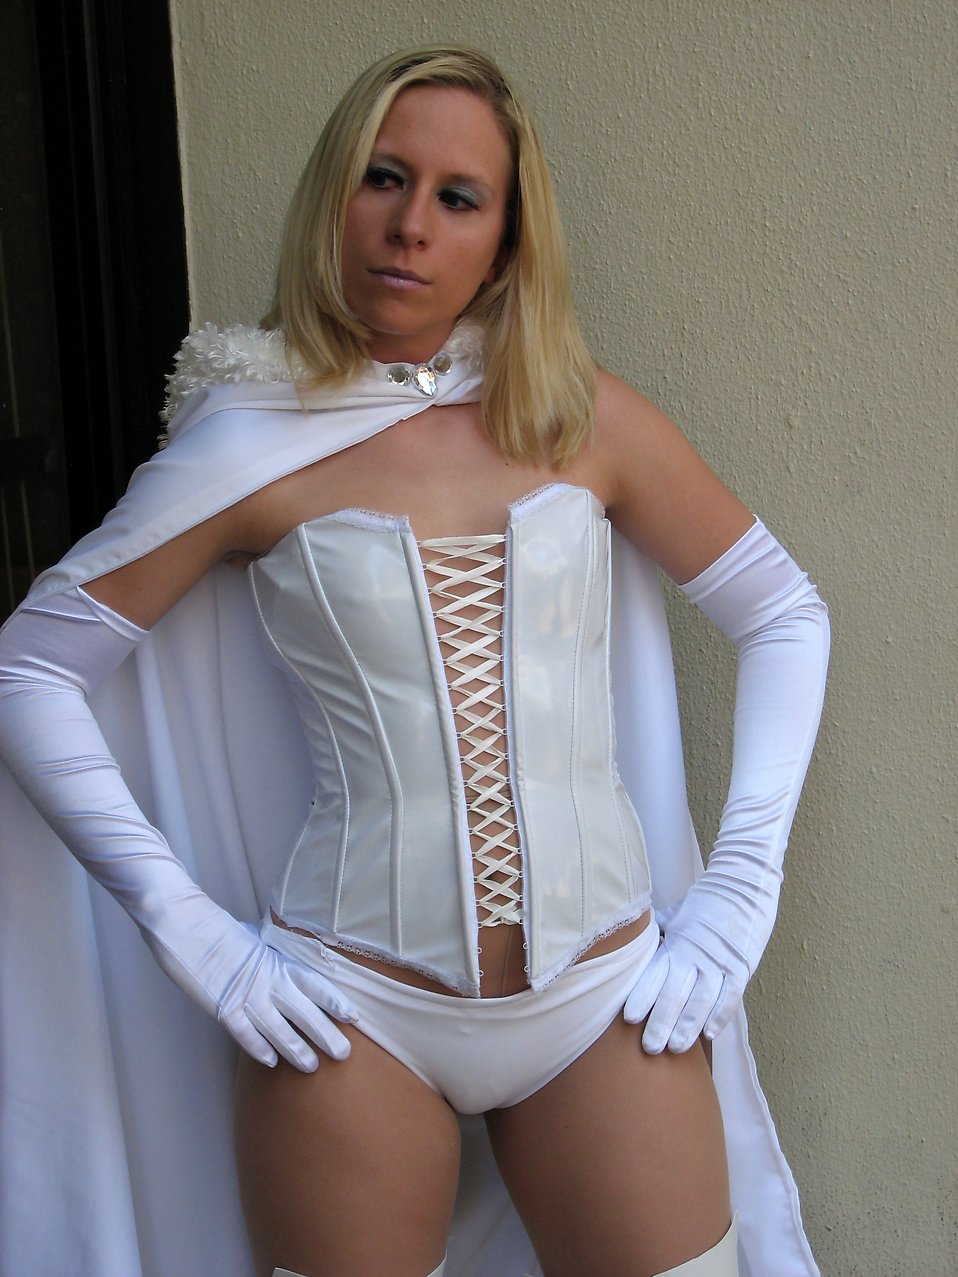 A beautiful blonde woman in a white superhero costume at Dragoncon 2008 : Free Stock Photo